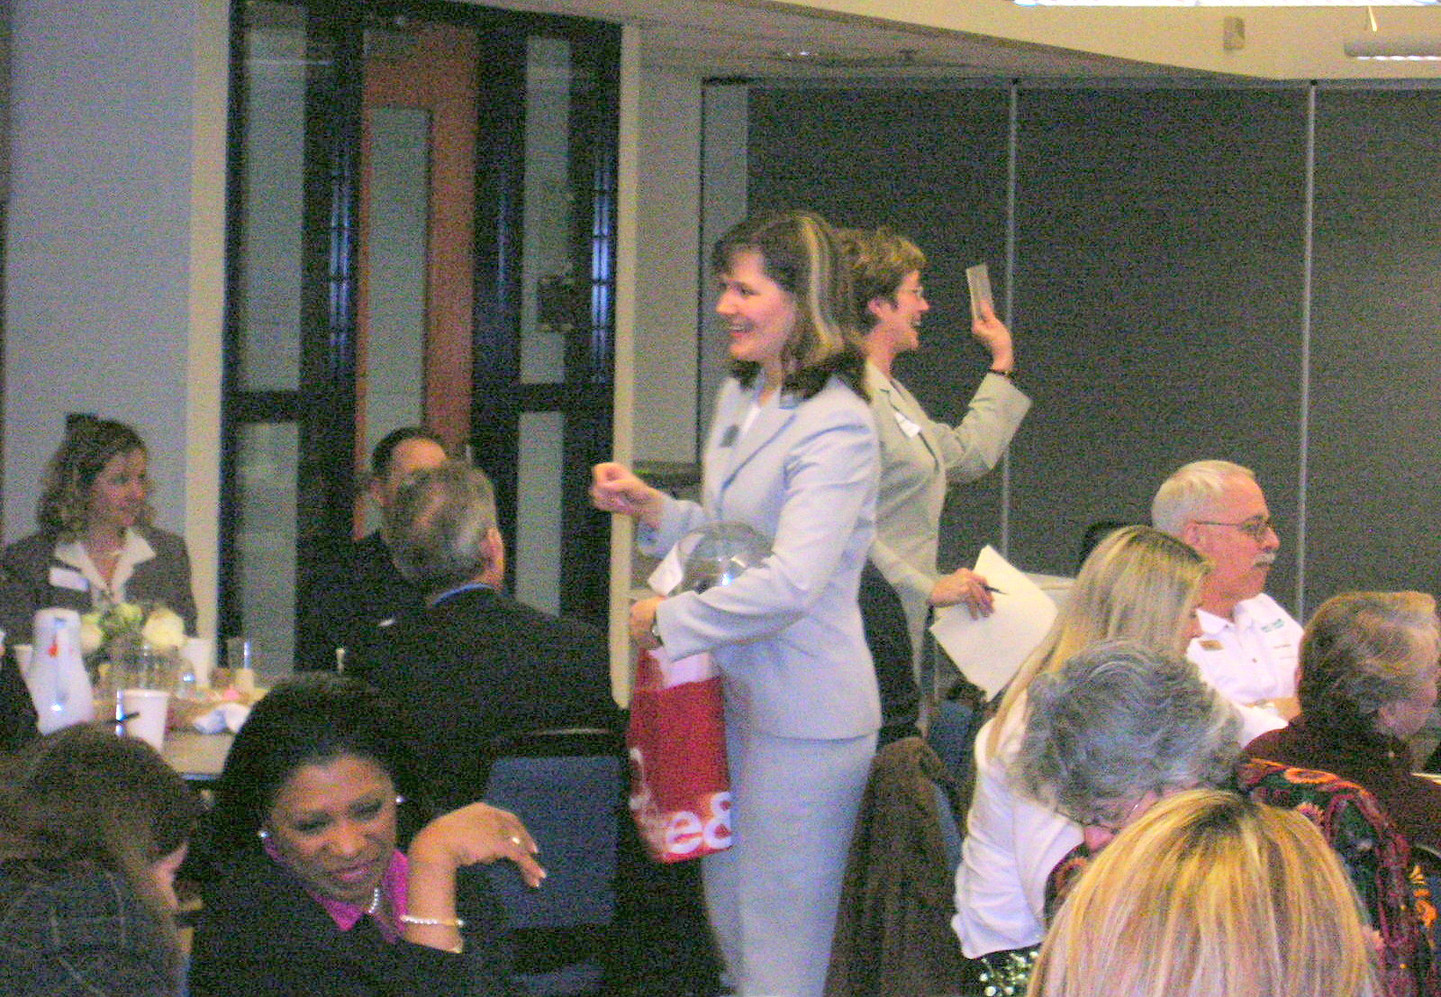 2006 ~ Hosting a Luncheon for Elder Care Providers